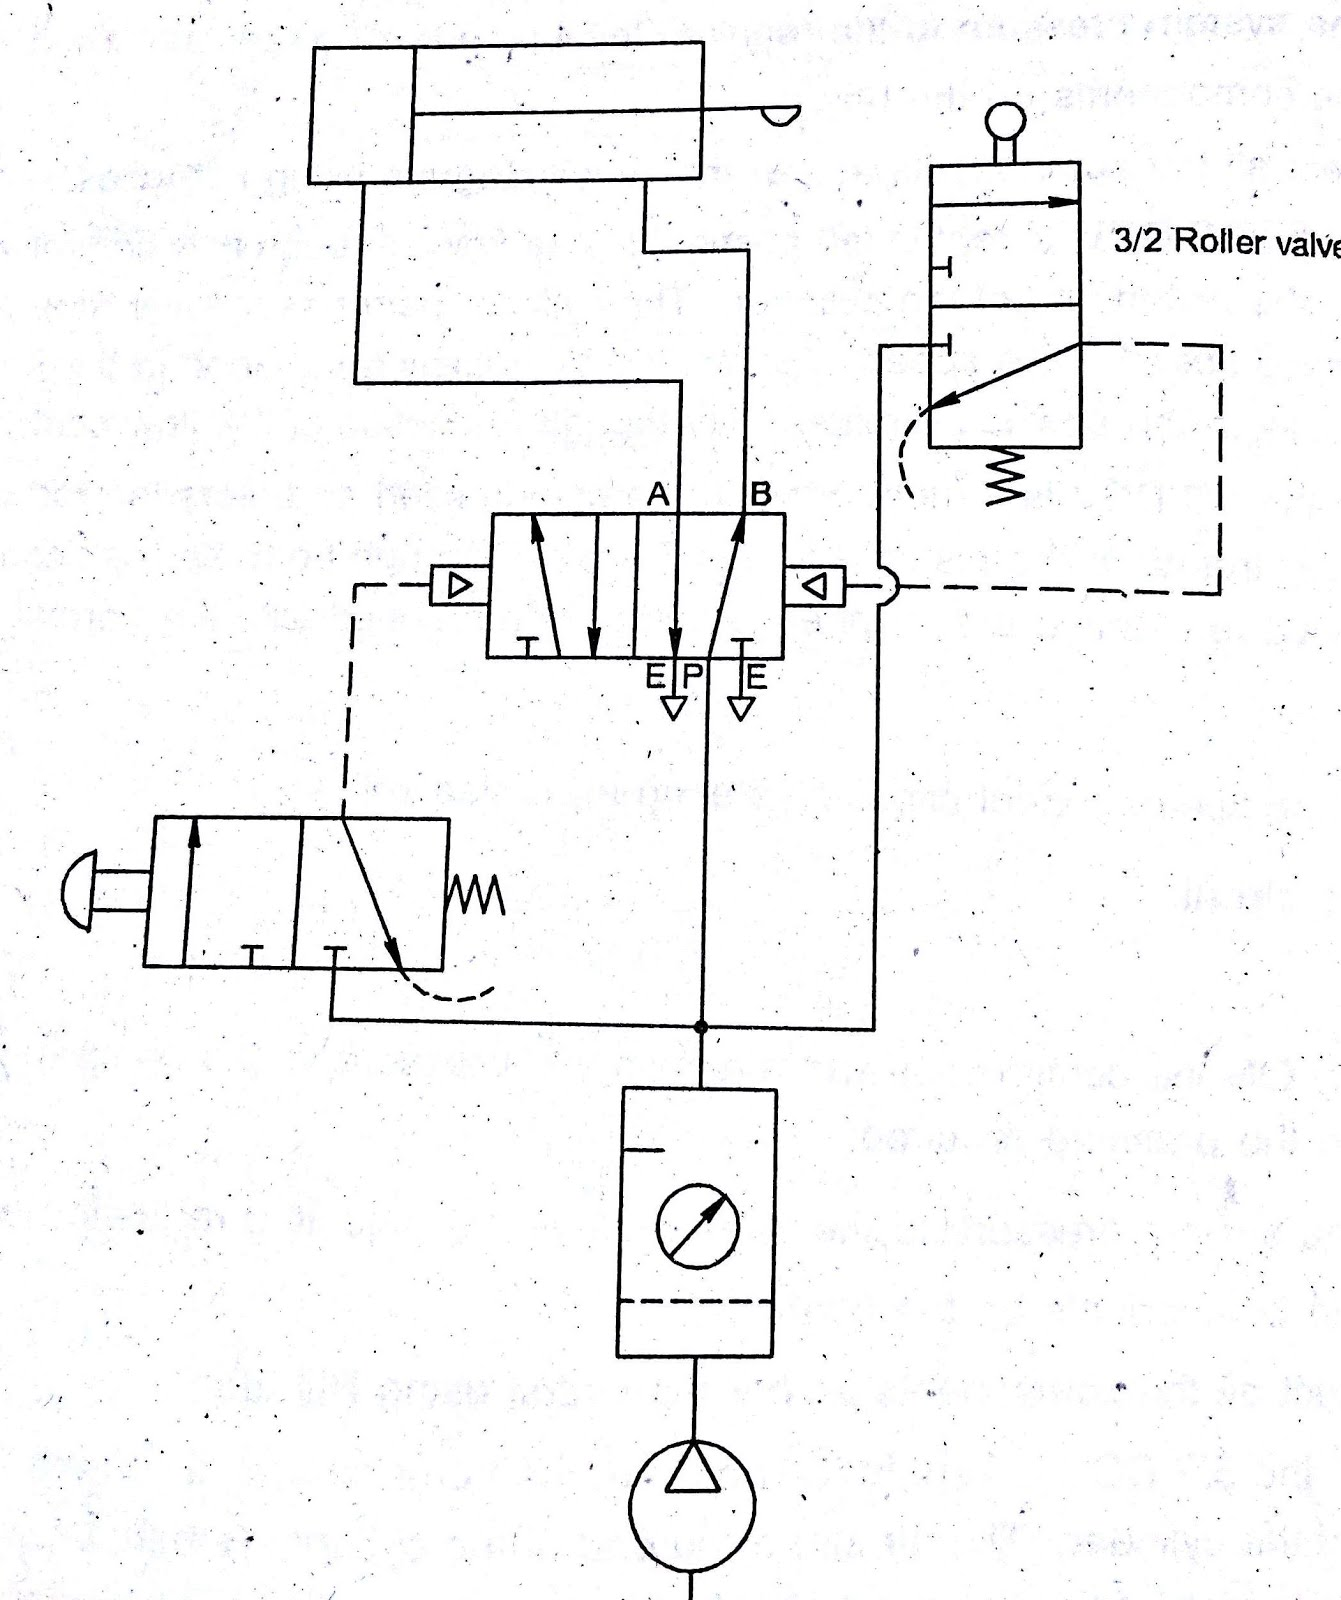 Machine Drawing: Double acting cylinder Pneumatic Circuit